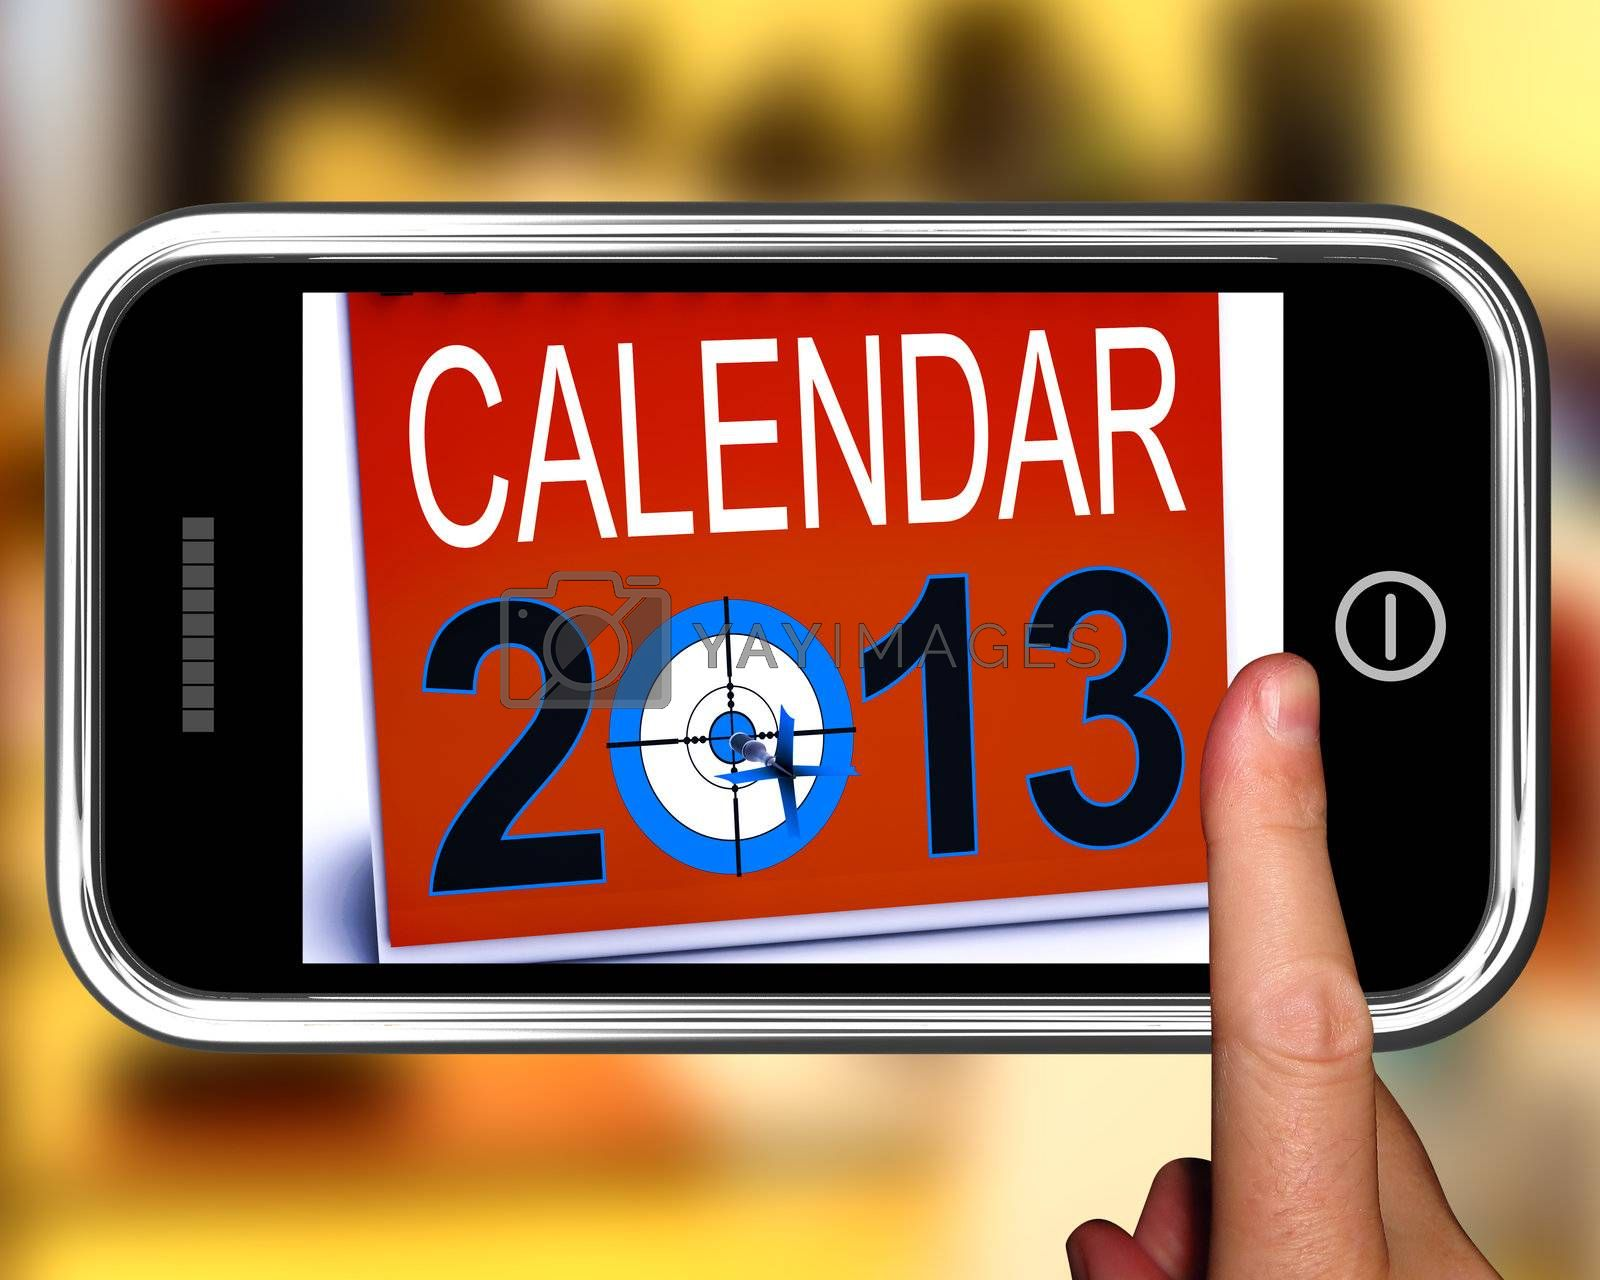 Calendar 2013 On Smartphone Showing Future Resolutions And Festivities